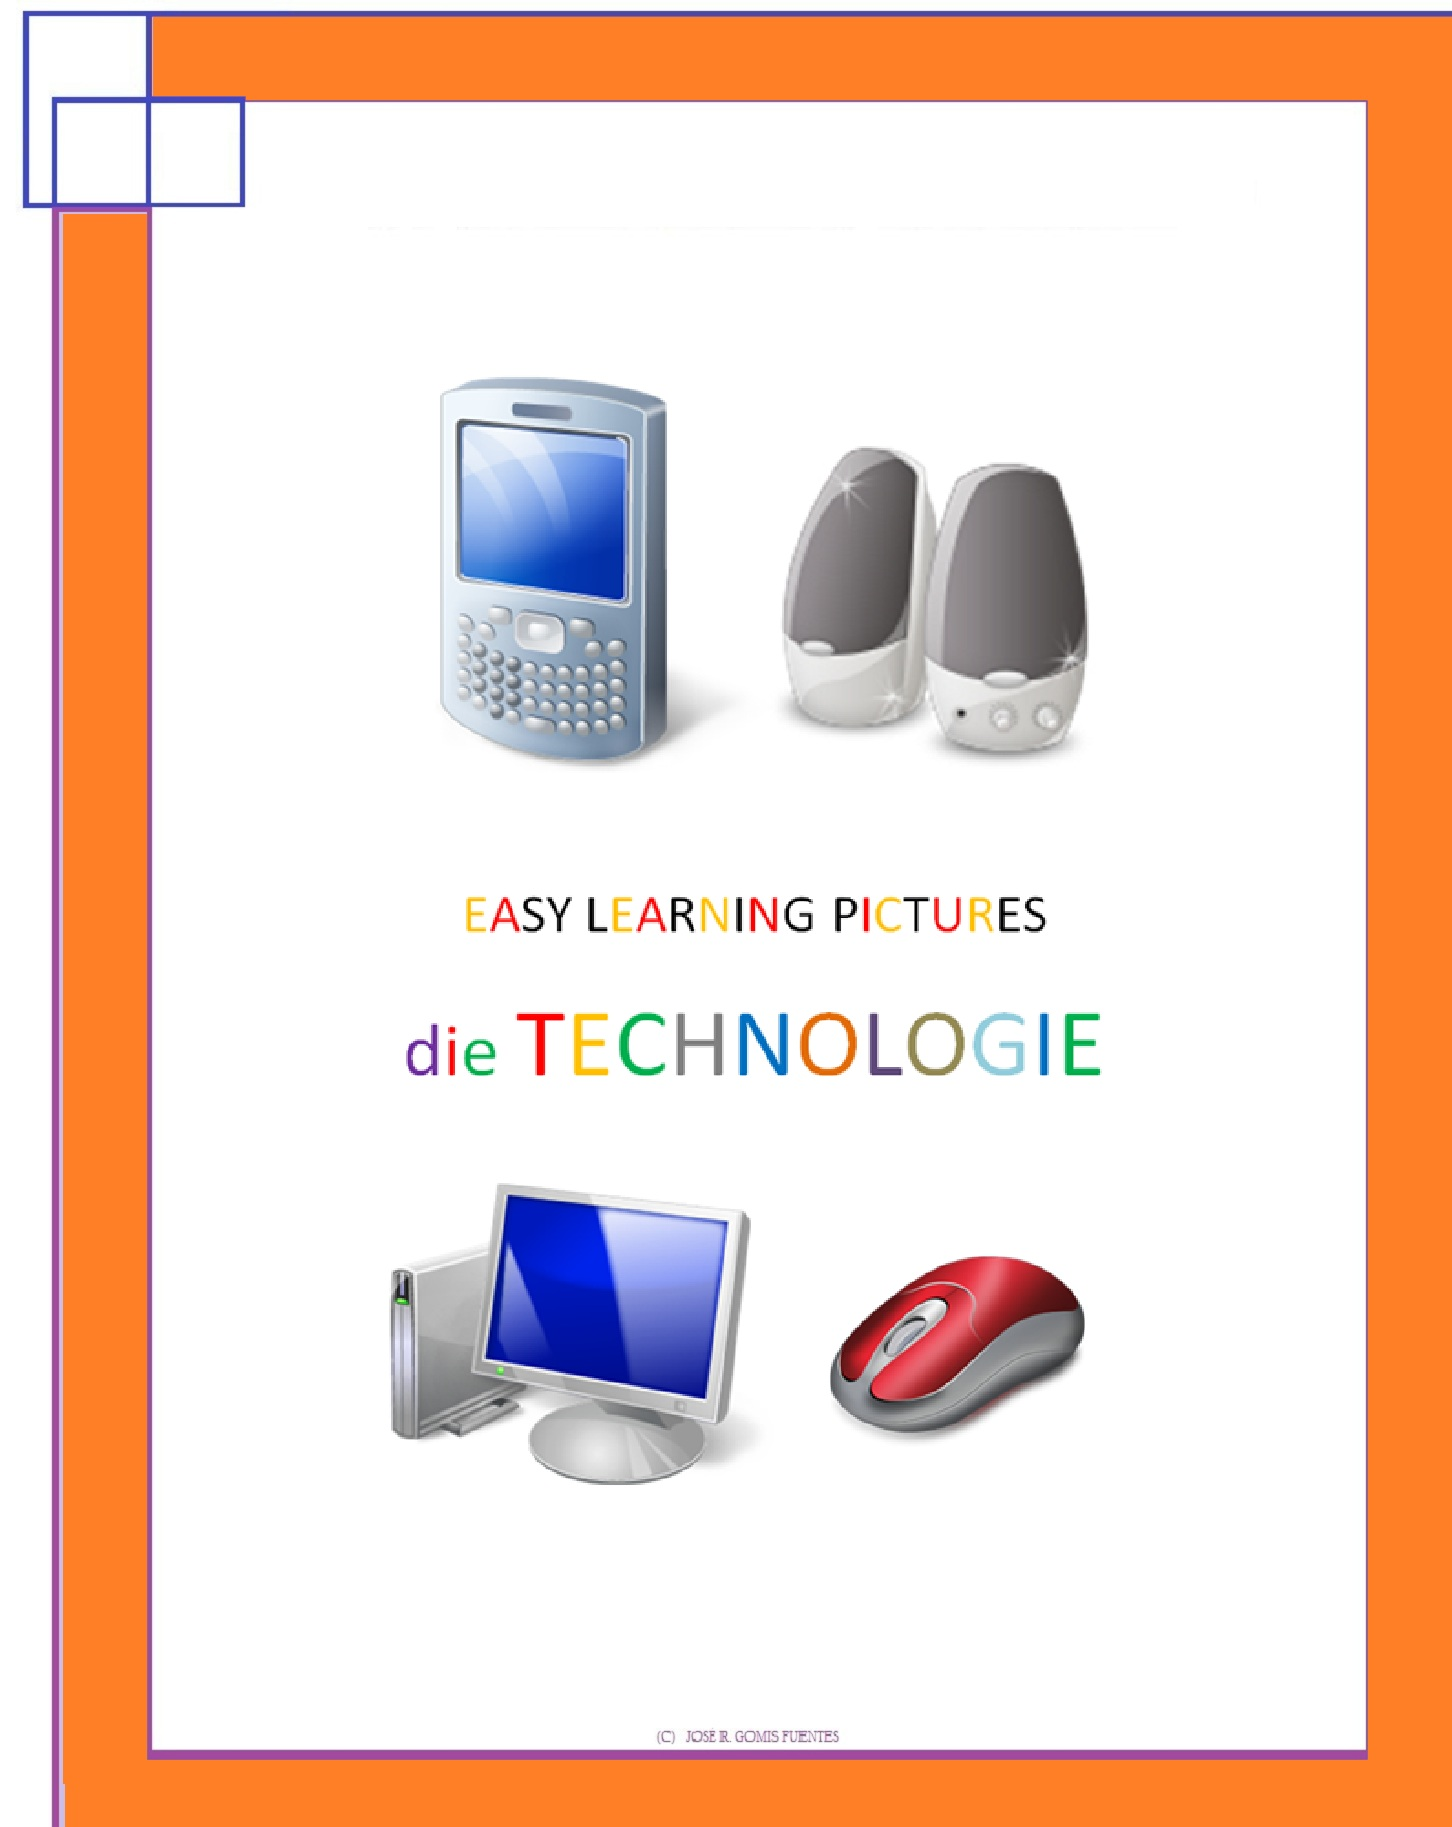 Jose Remigio Gomis Fuentes - Easy Learning Pictures. Die Technologie